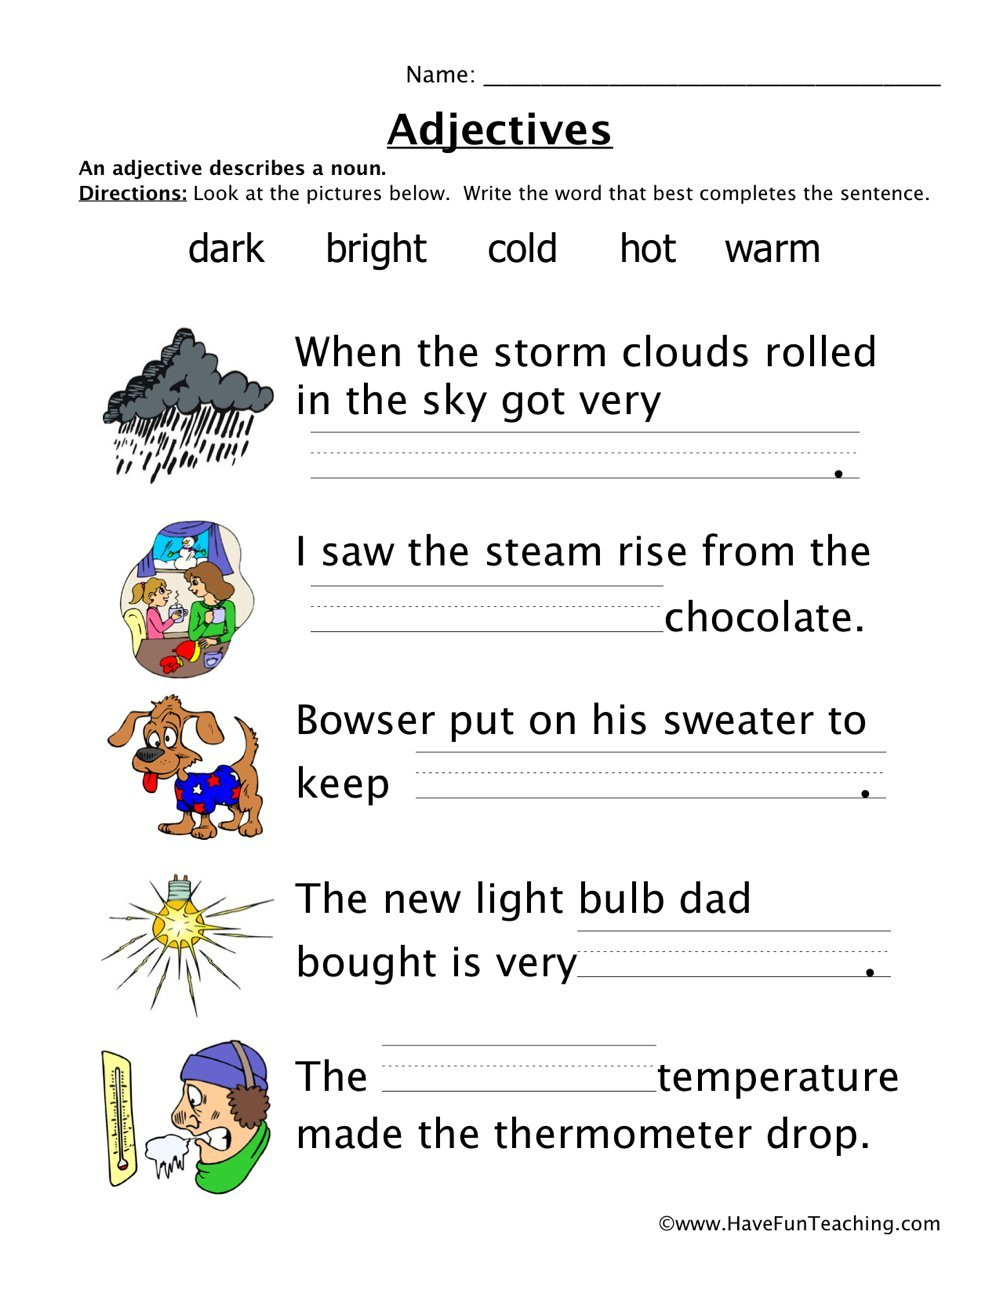 Adjectives Worksheets  Have Fun Teaching Also Adjectives Worksheets For Kindergarten